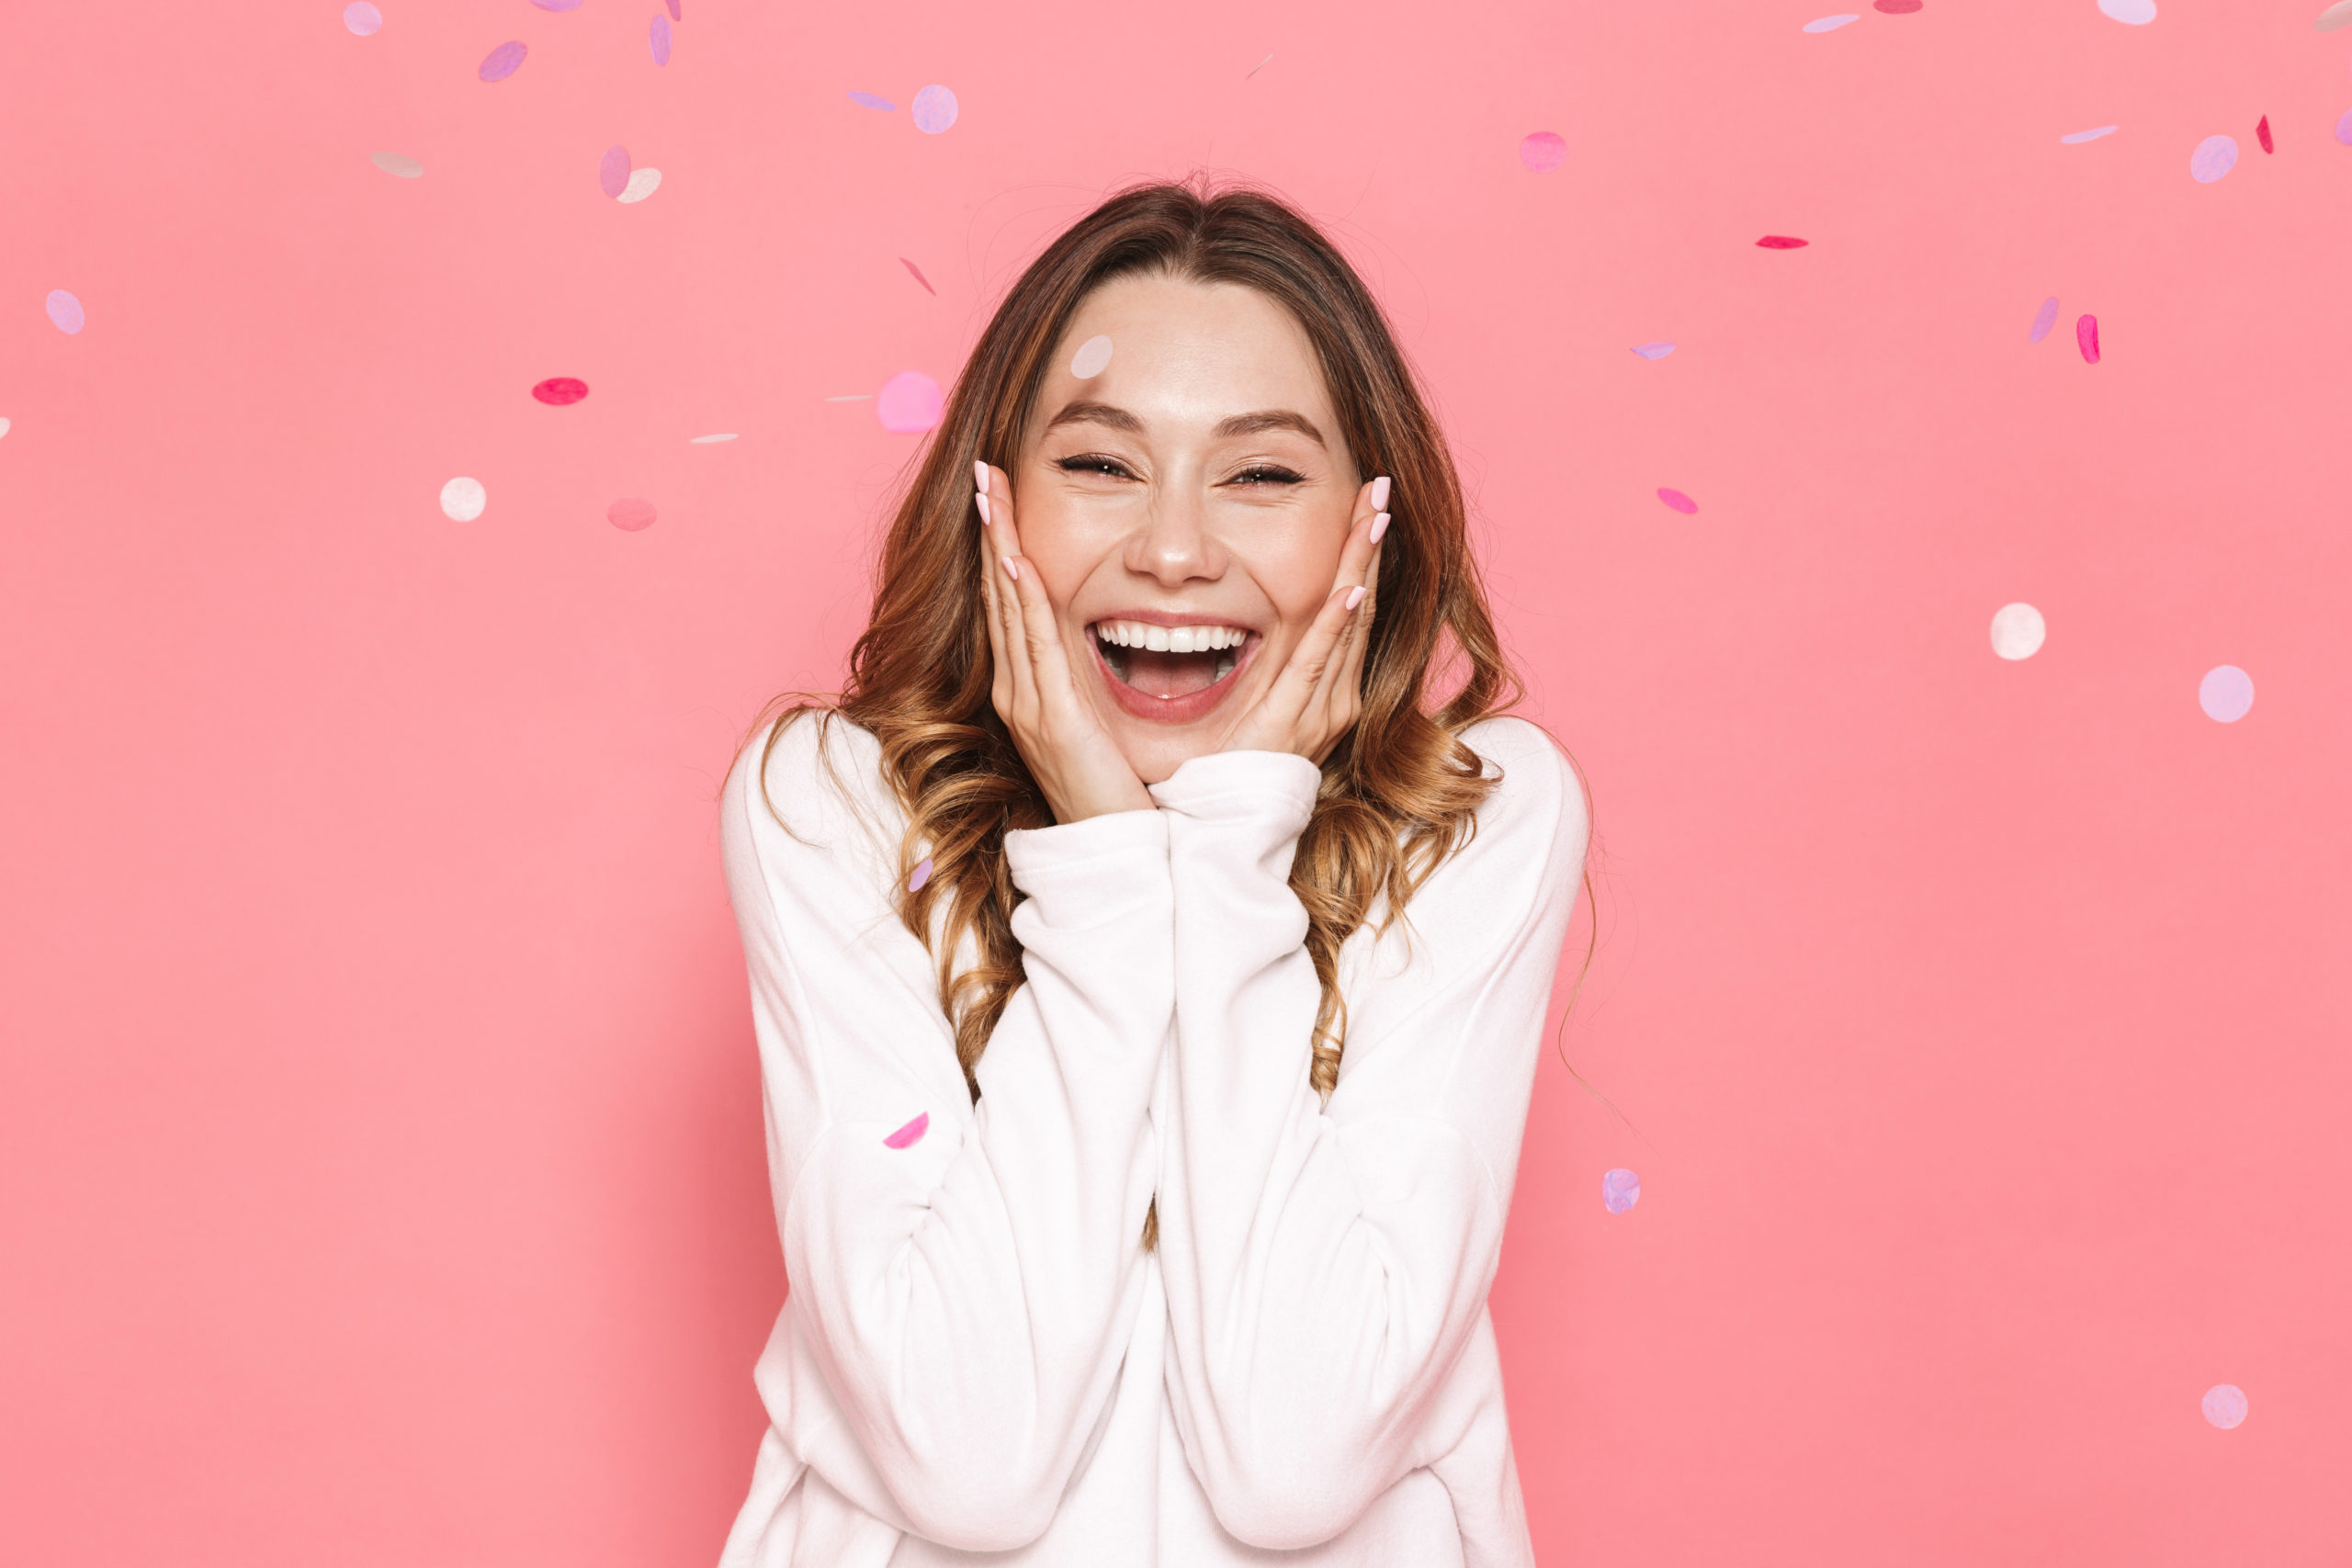 Portrait of an excited young woman celebrating under confetti shower isolated over pink background